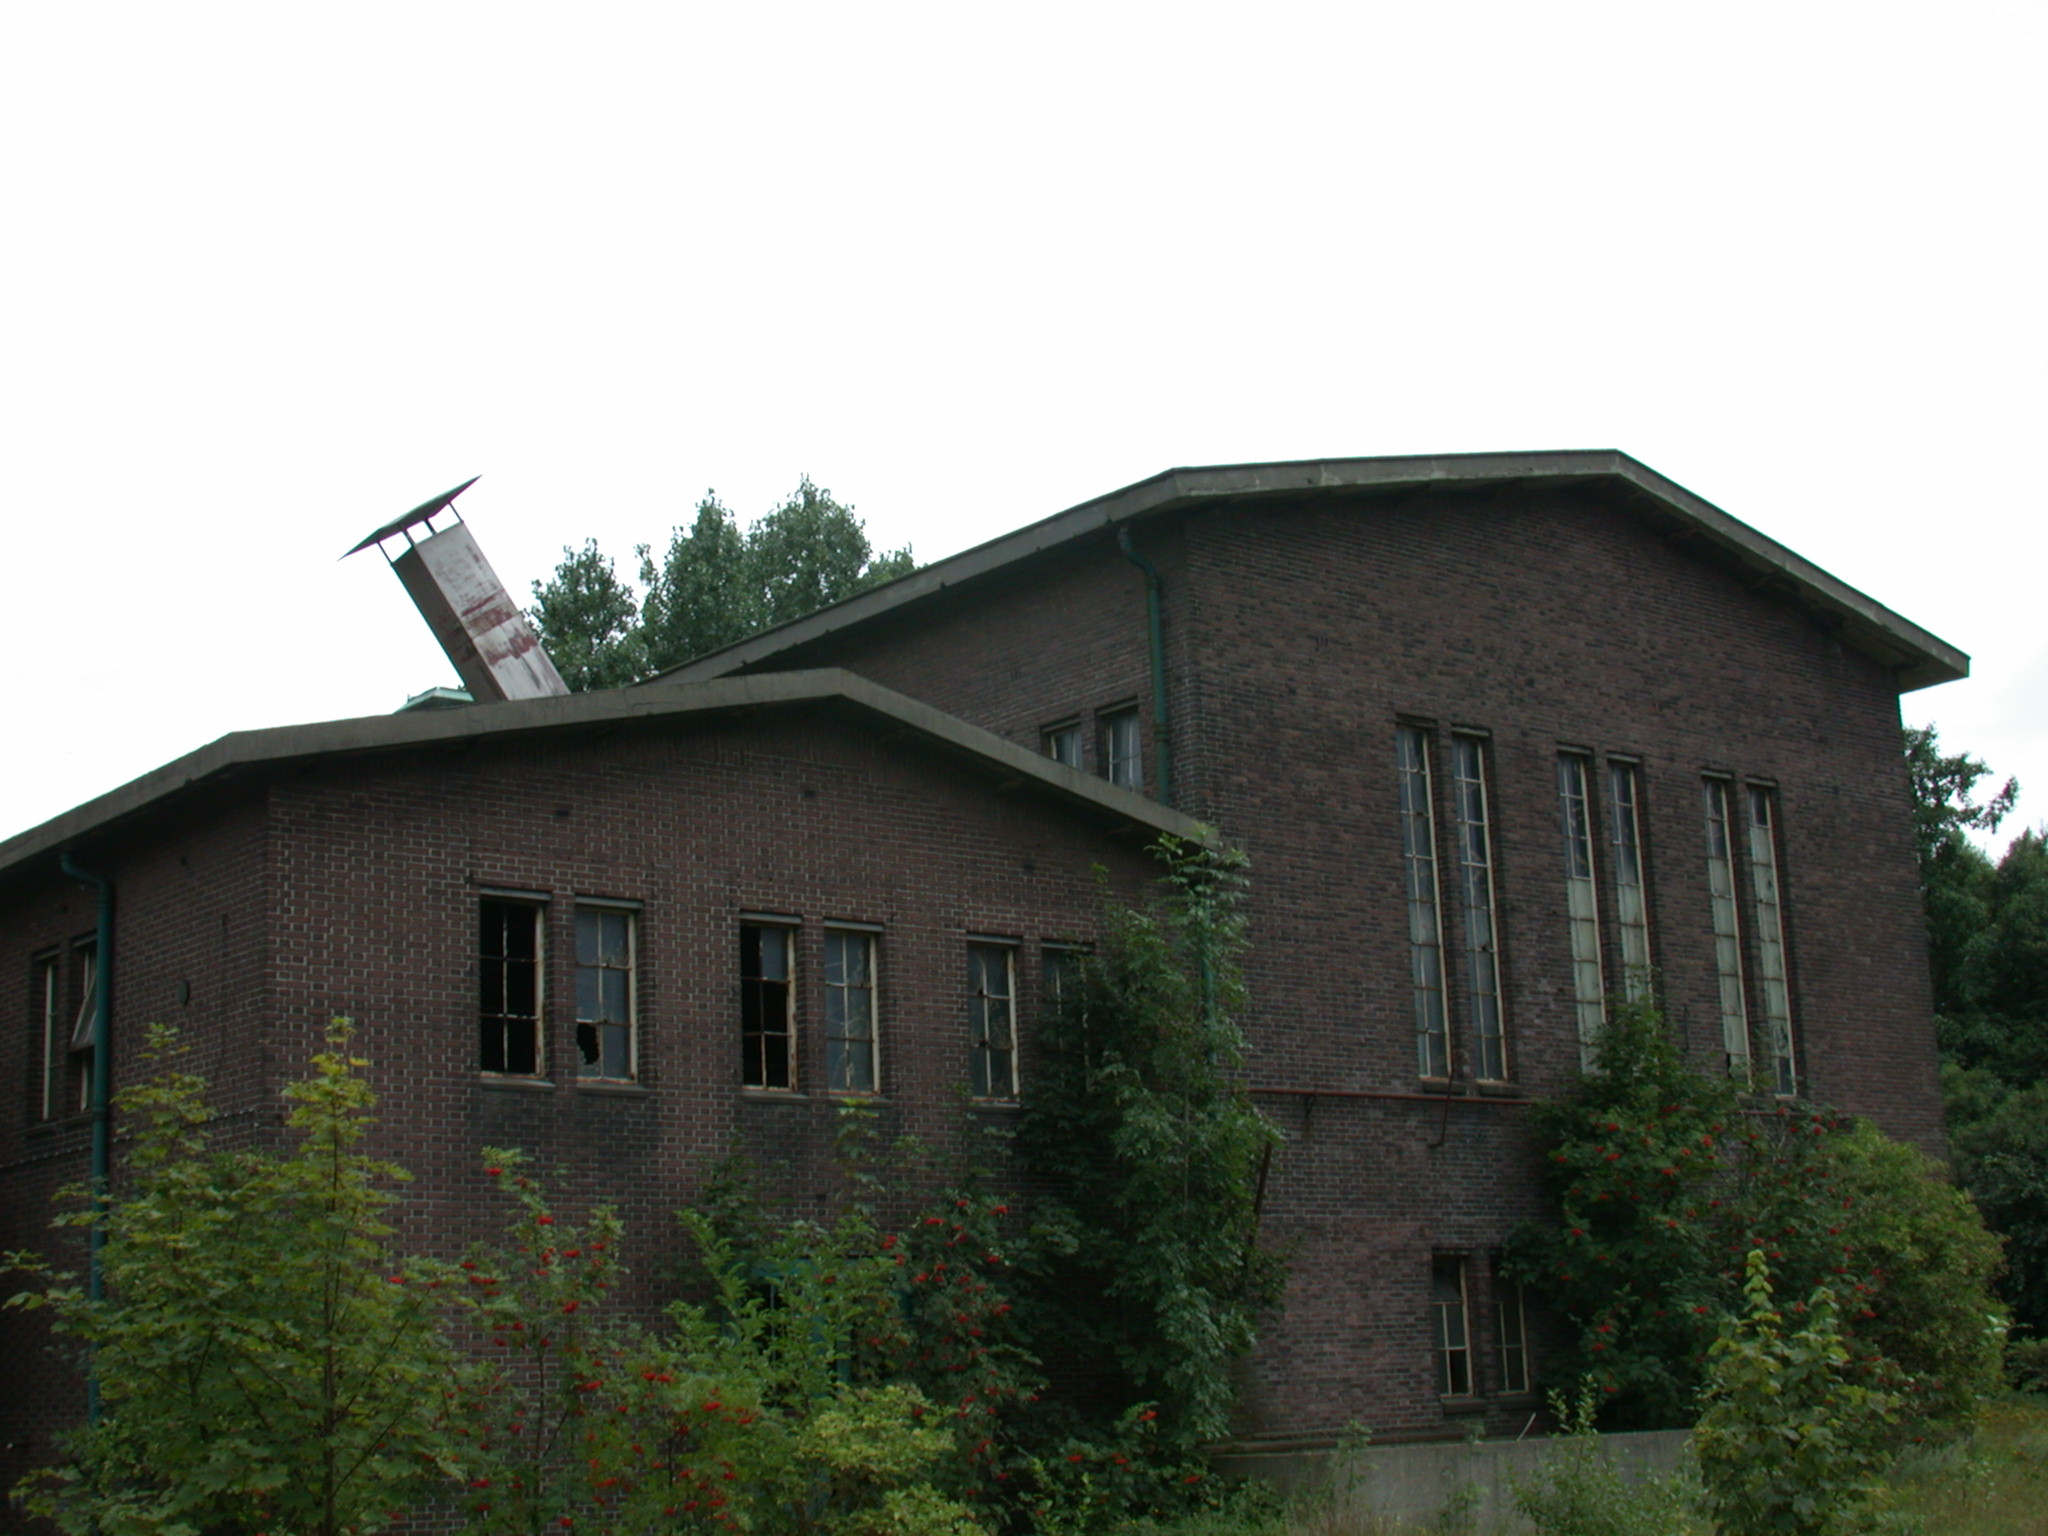 architecture exteriors abandoned factory warehouse chimney building